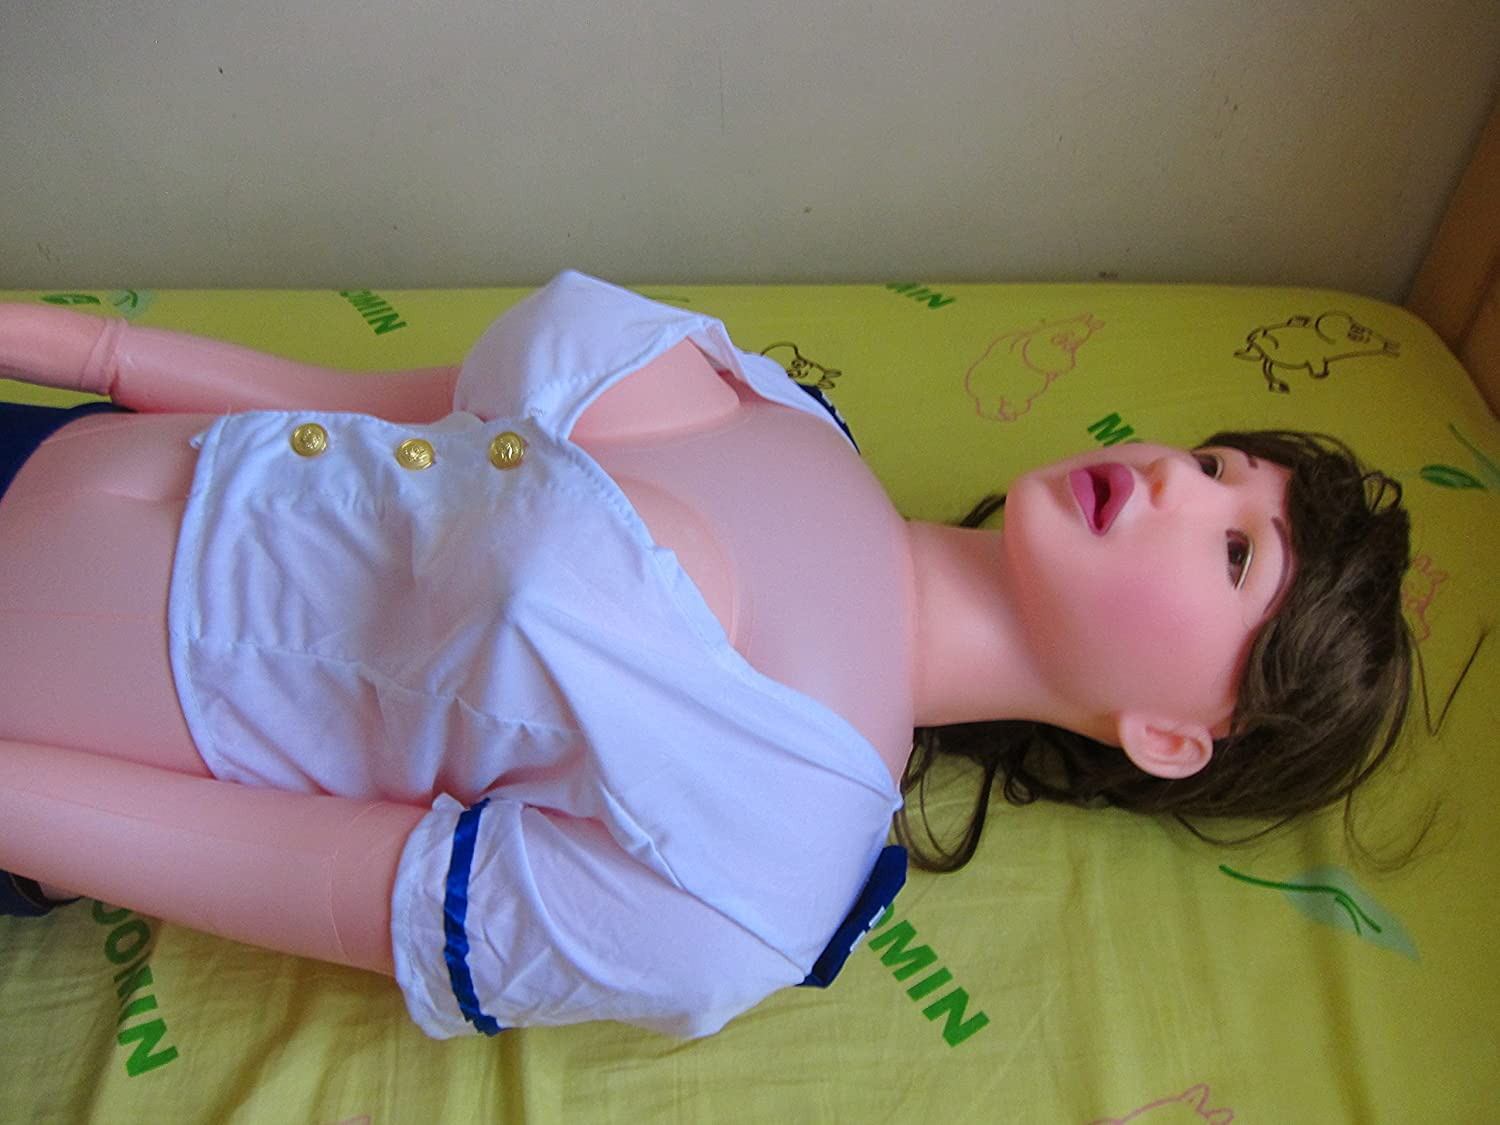 Amazon.com: Semi-solid Inflatable Doll Asian Version: Health & Personal Care